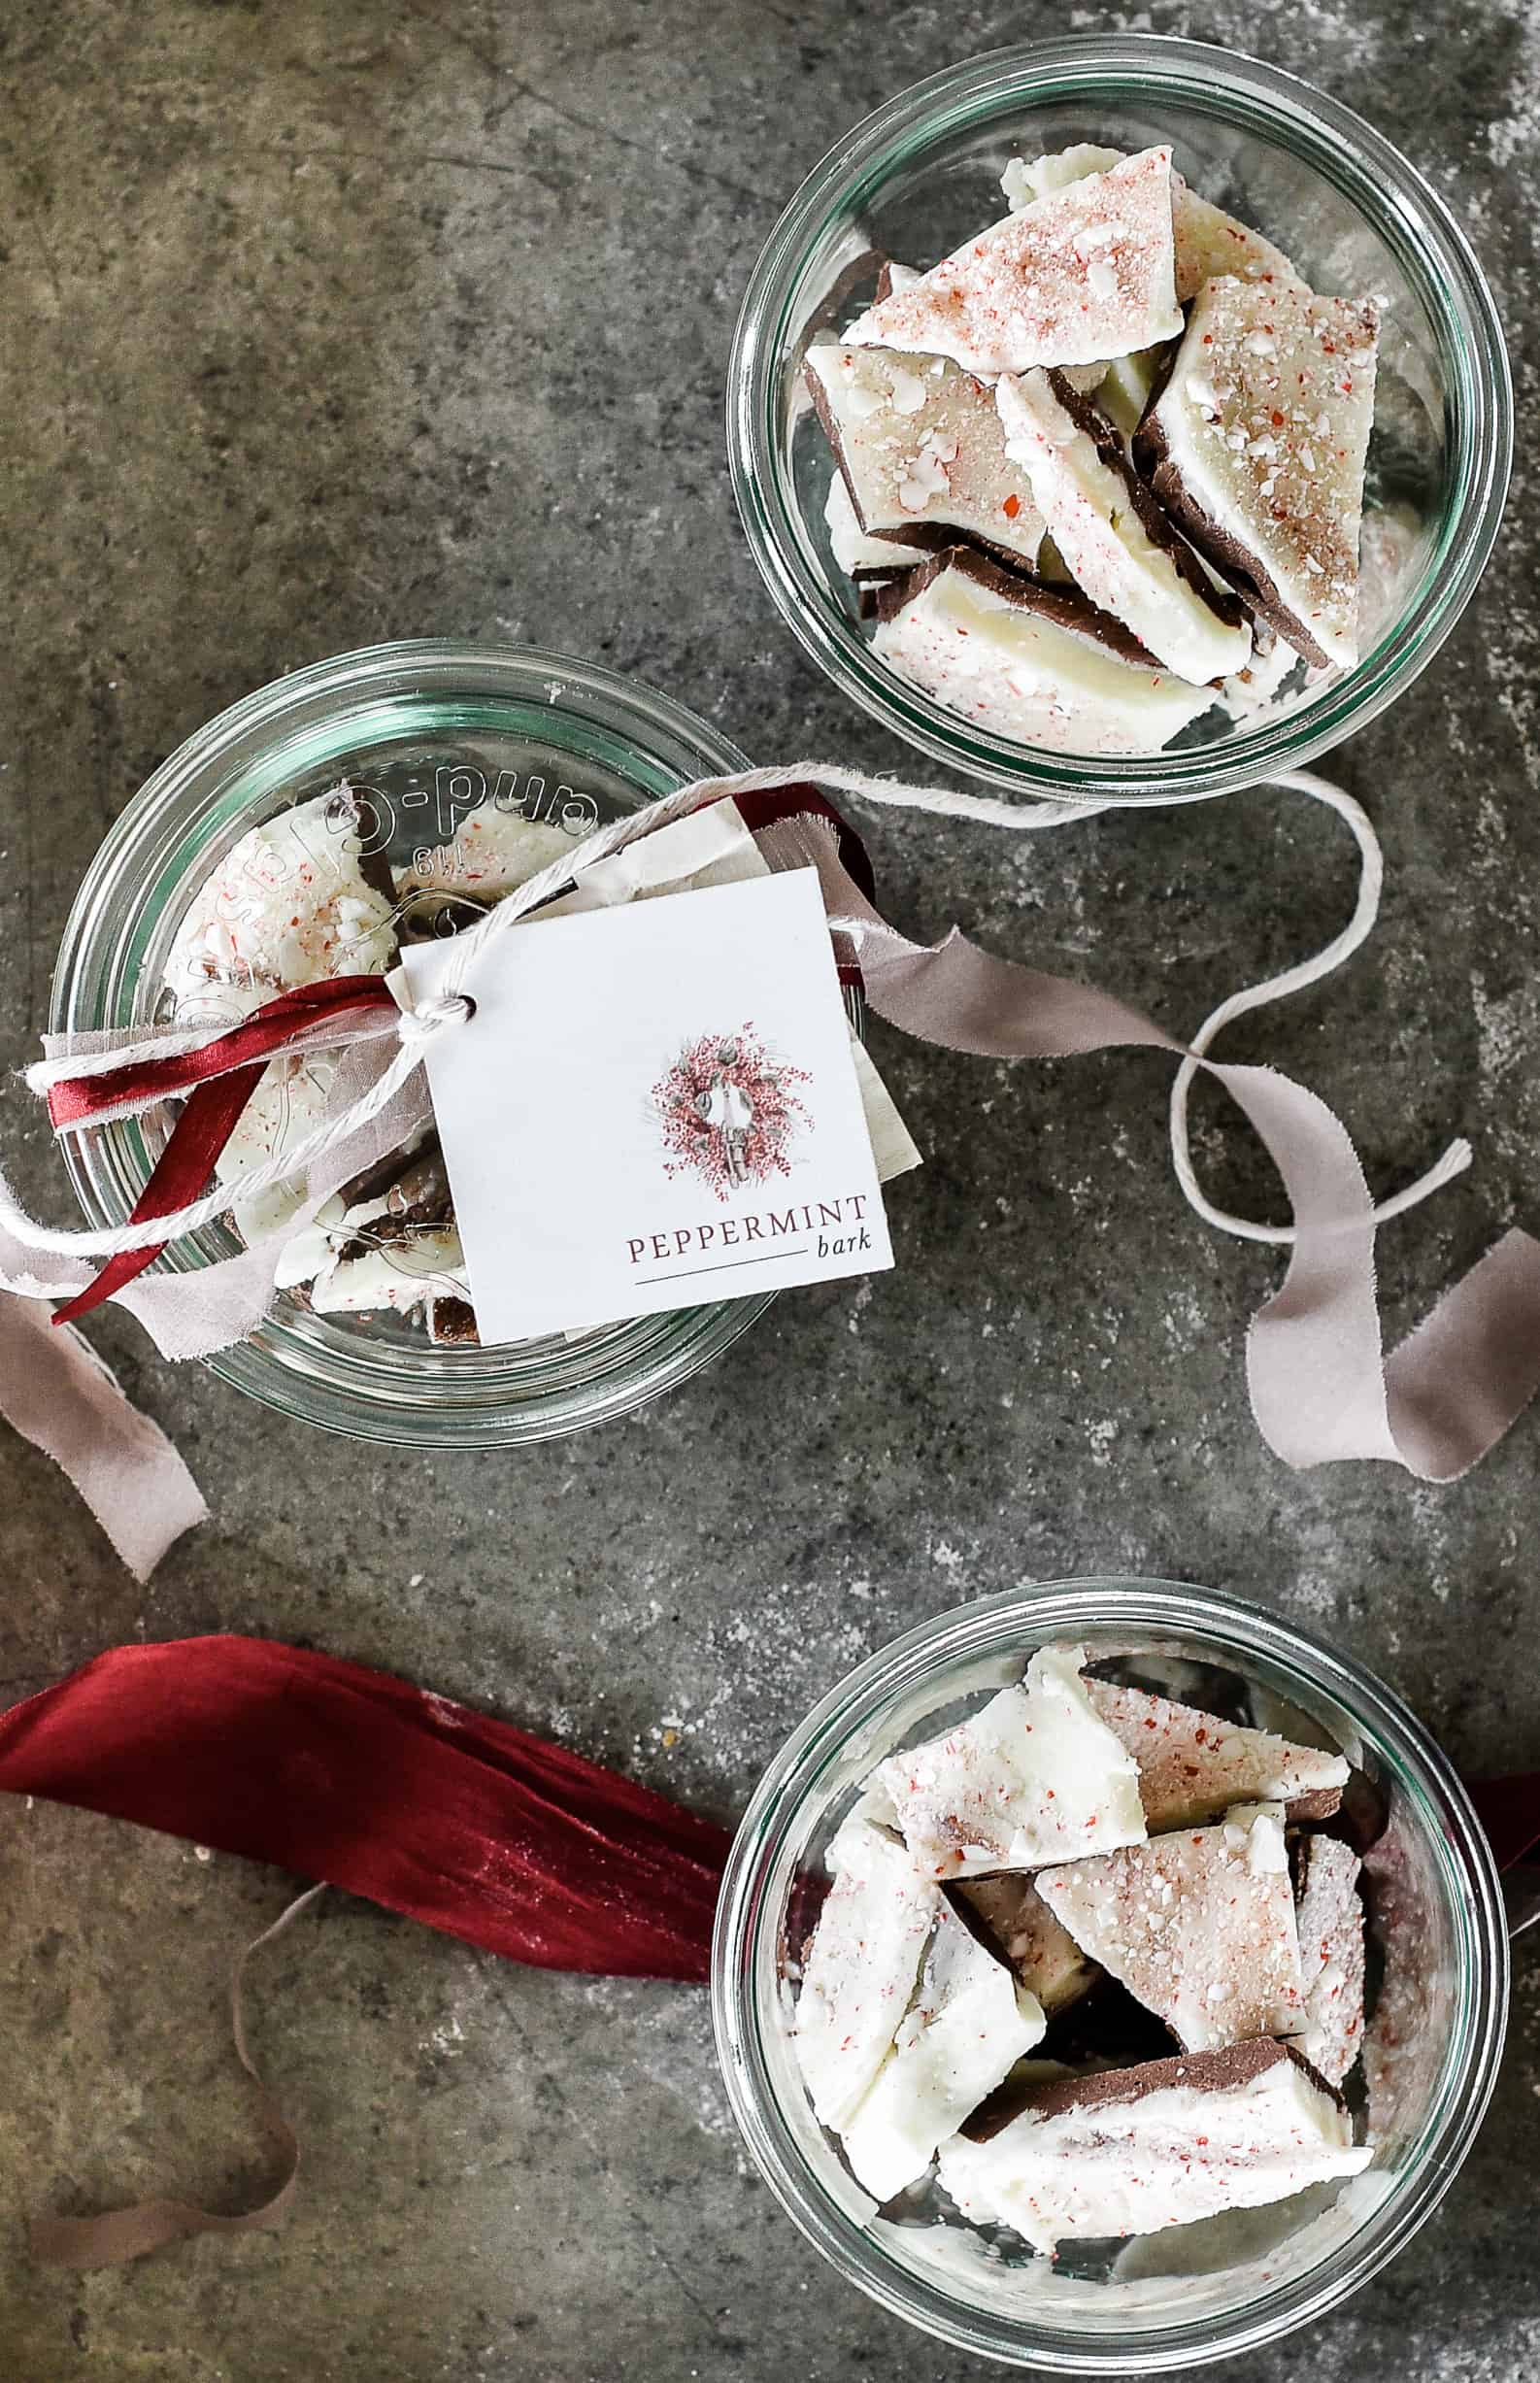 Make this homemade peppermint bark recipe as an easy handmade gift this holiday season! You won't believe just how simple this homemade peppermint bark recipe is!